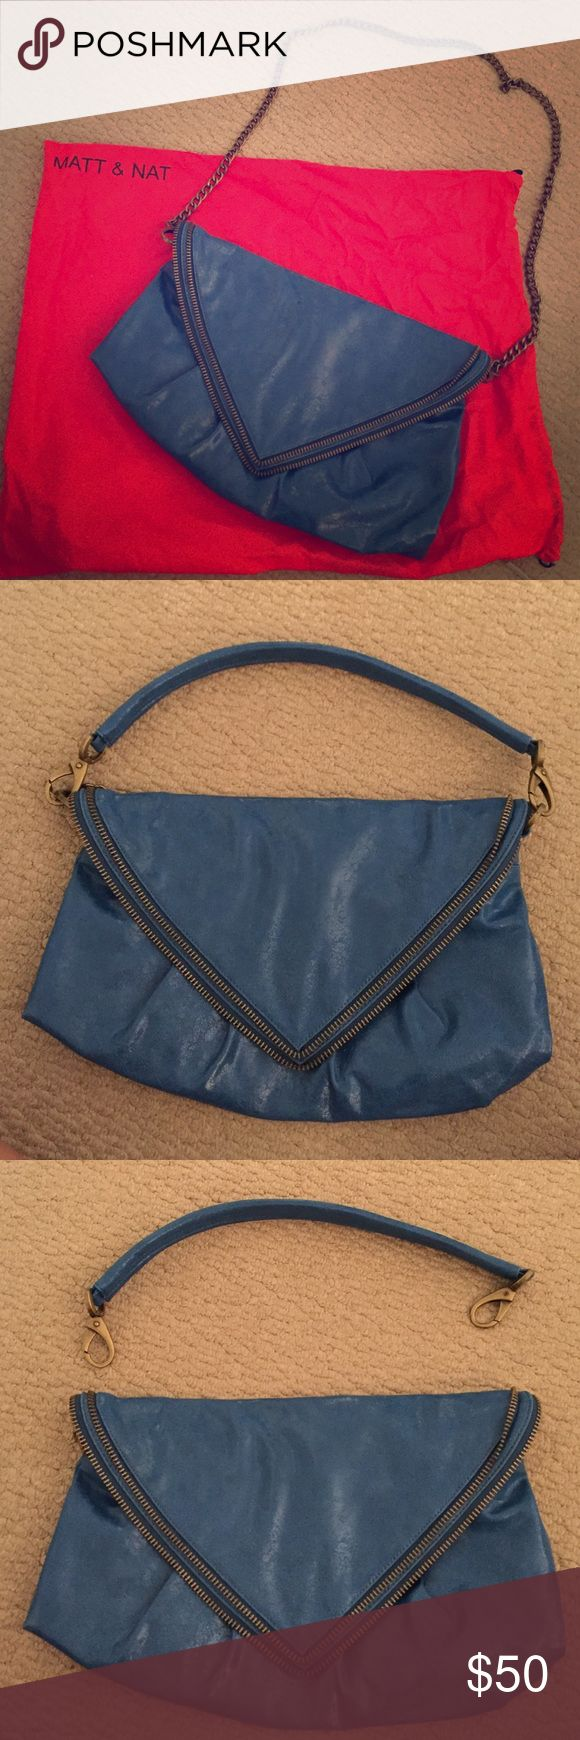 Matt and Nat handbag/crossbody/clutch! A 3 in one Matt and Nat bag. Can either be a handbag, a crossbody or a clutch! Includes interchangeable straps for whatever type of bag you need that day! Beautiful zipper design on the front. Includes dust bag. In excellent condition Matt and Nat Bags Shoulder Bags